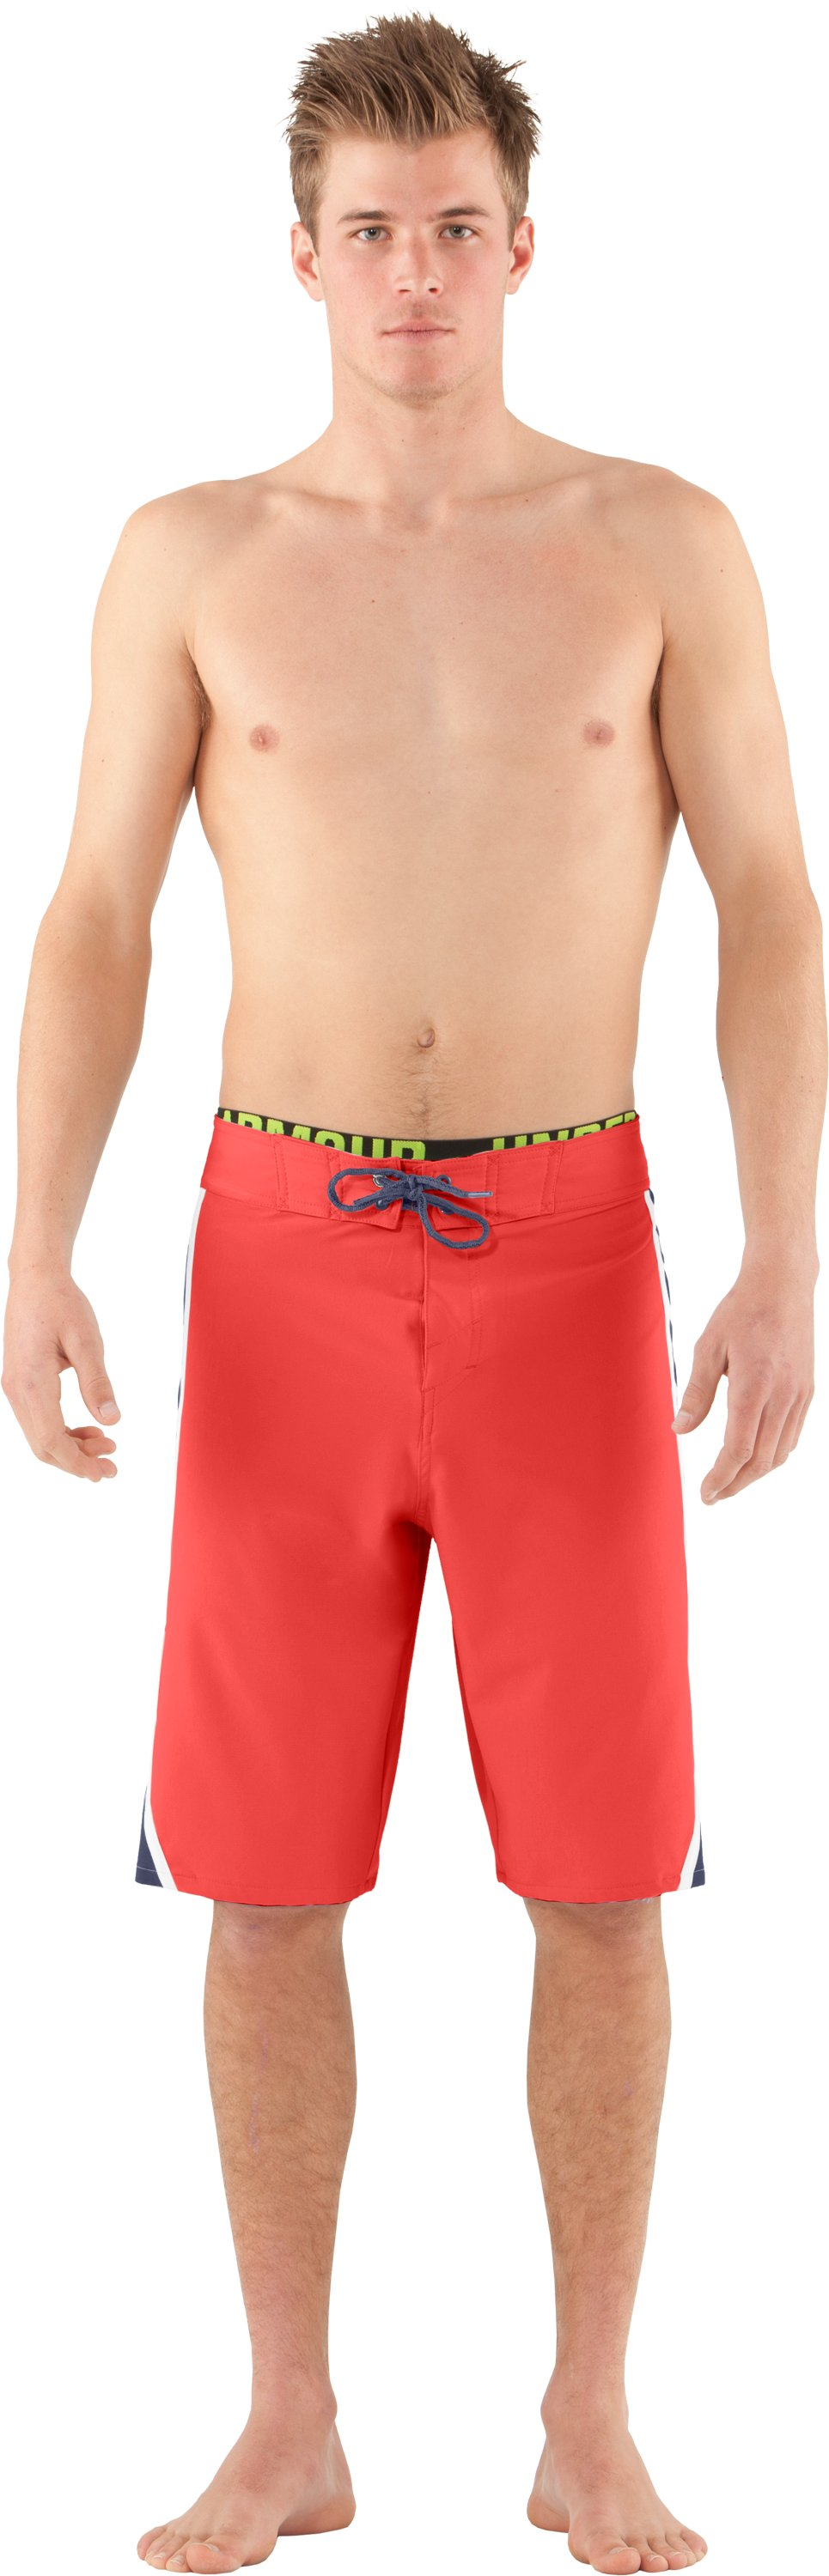 Men's UA Munnaruck Board Shorts, Fire